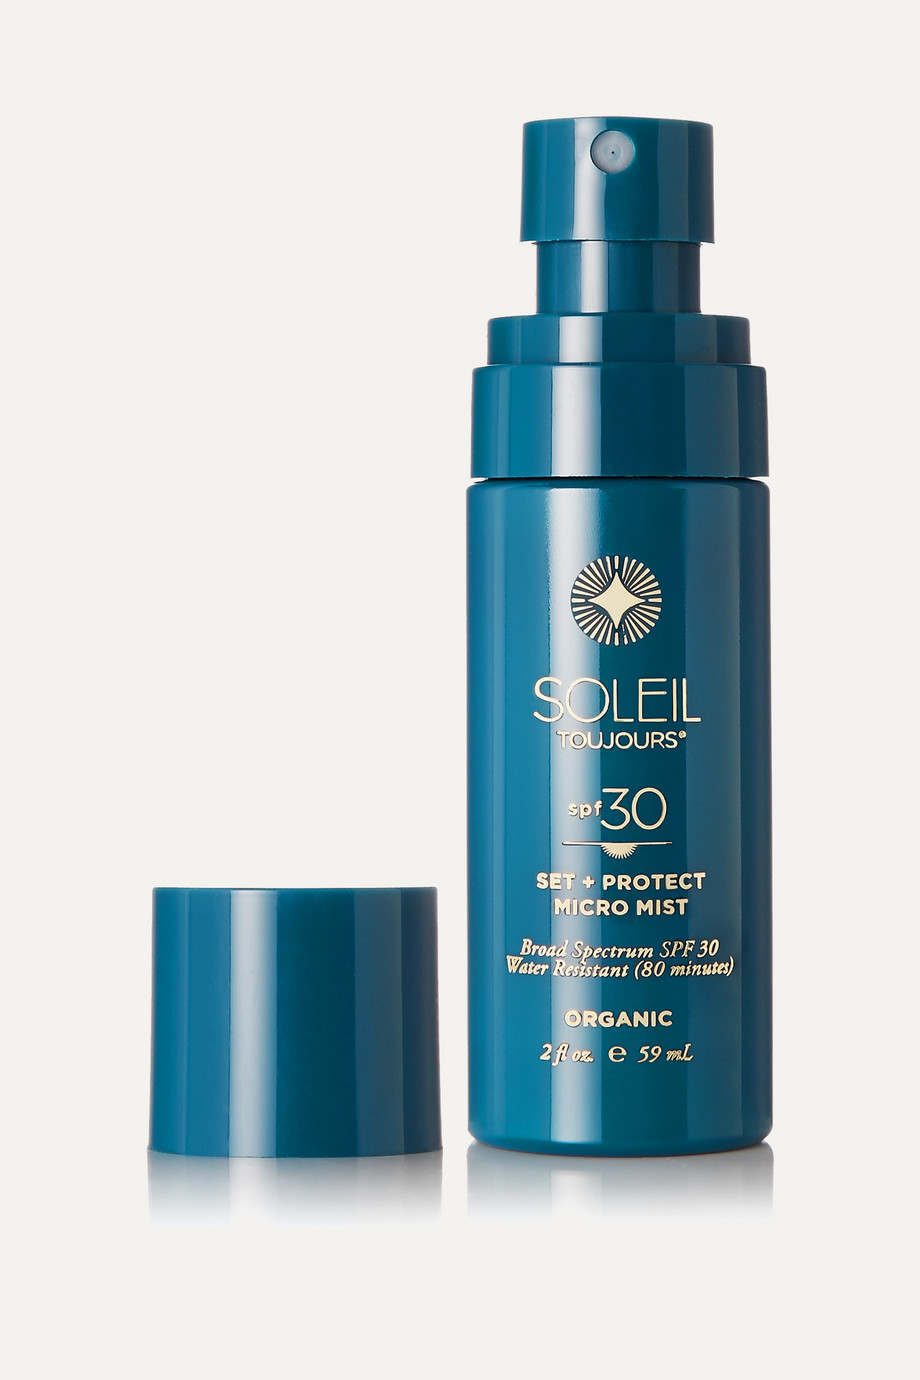 Soleil Toujours + NET SUSTAIN SPF30 Organic Set + Protect Micro Mist, 59ml